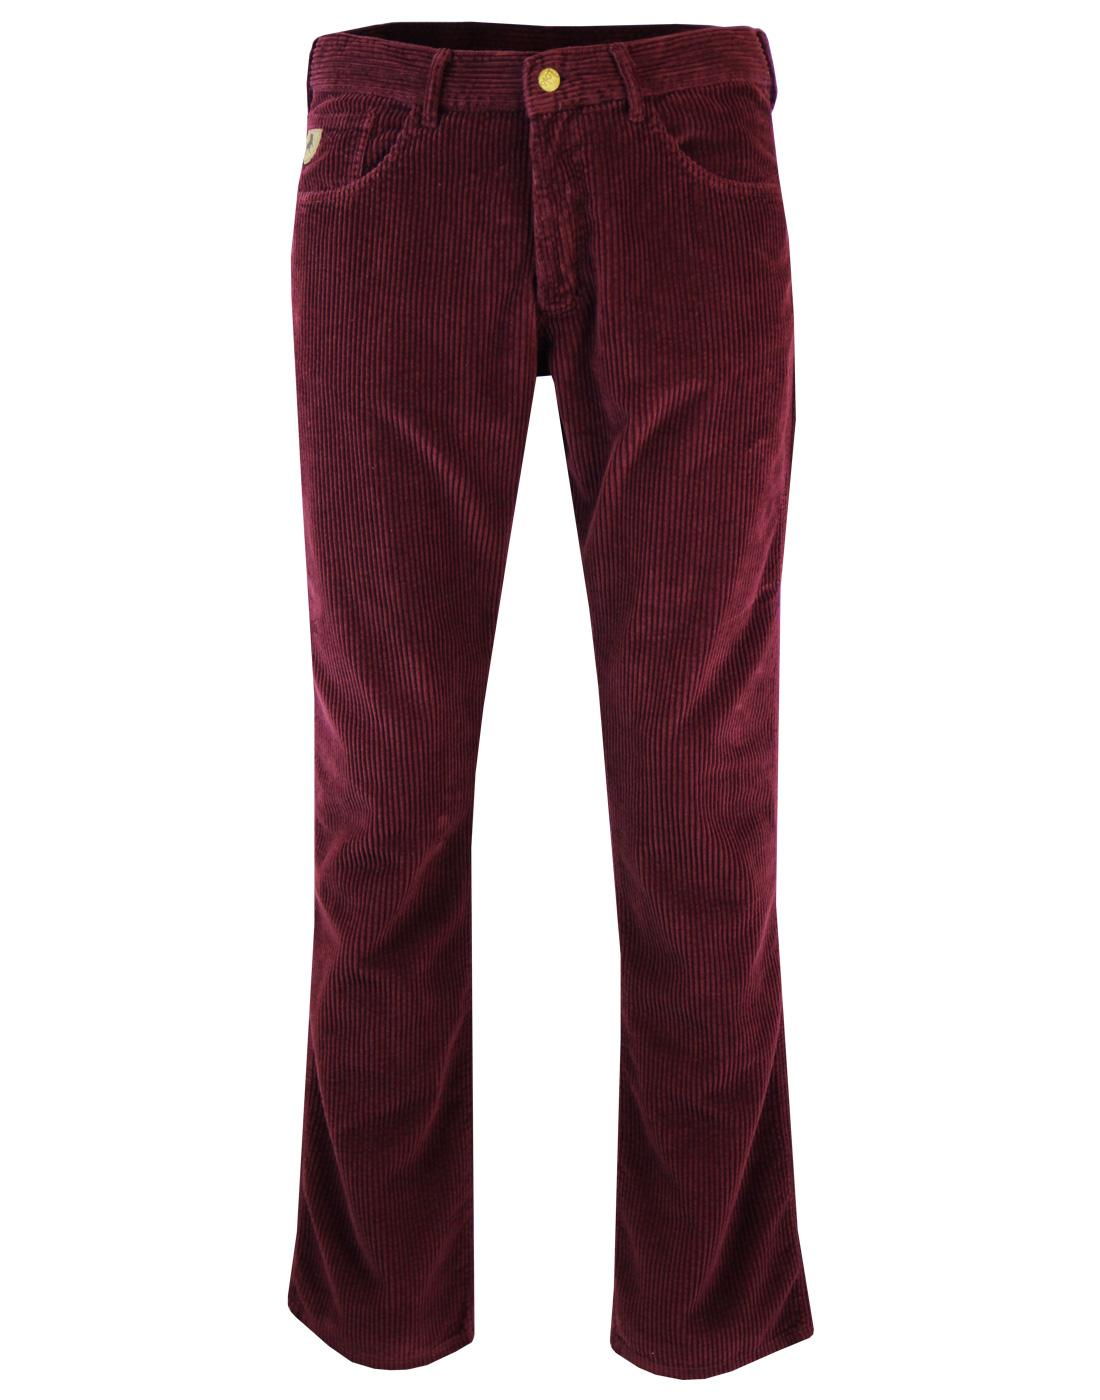 New Dallas LOIS 1980s Mod Jumbo Cord Trousers (P)